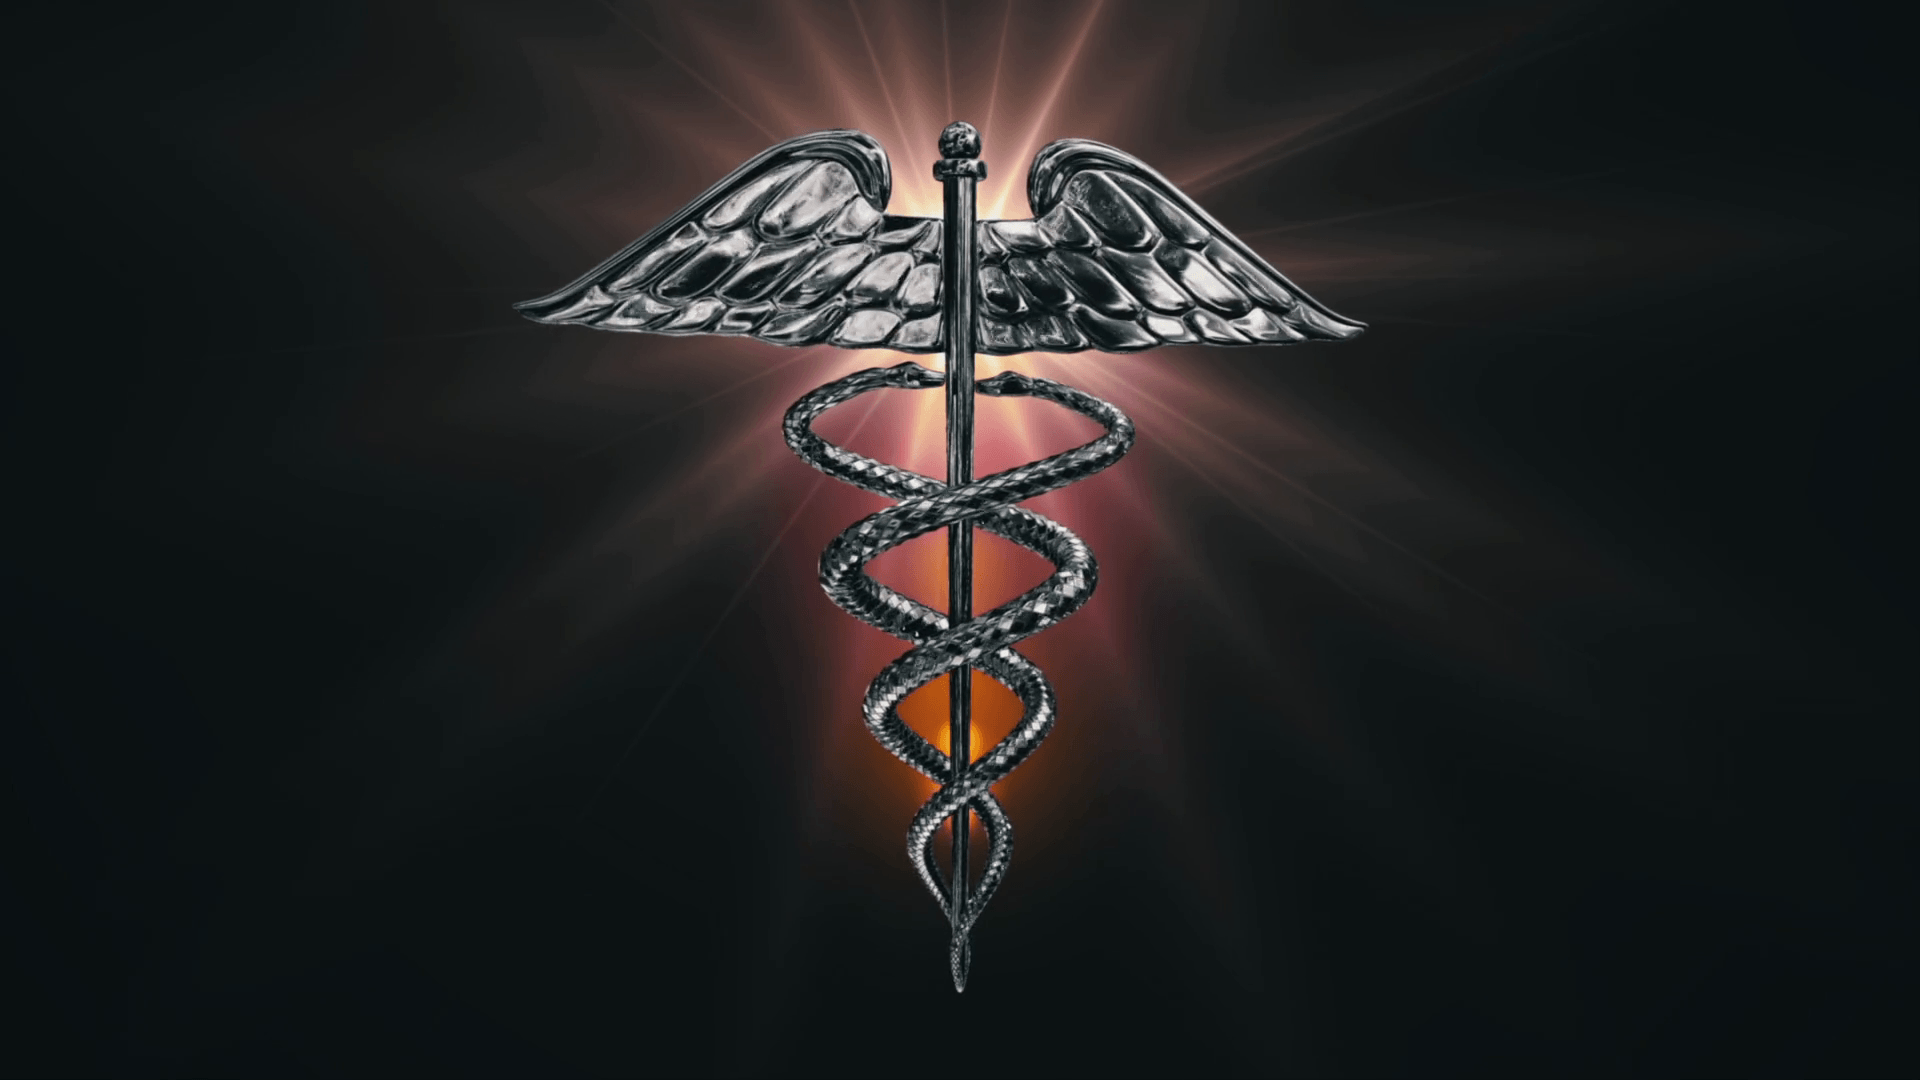 Rendered Bits Ipad Medical Wallpaper Theme: Medical Symbol Wallpapers